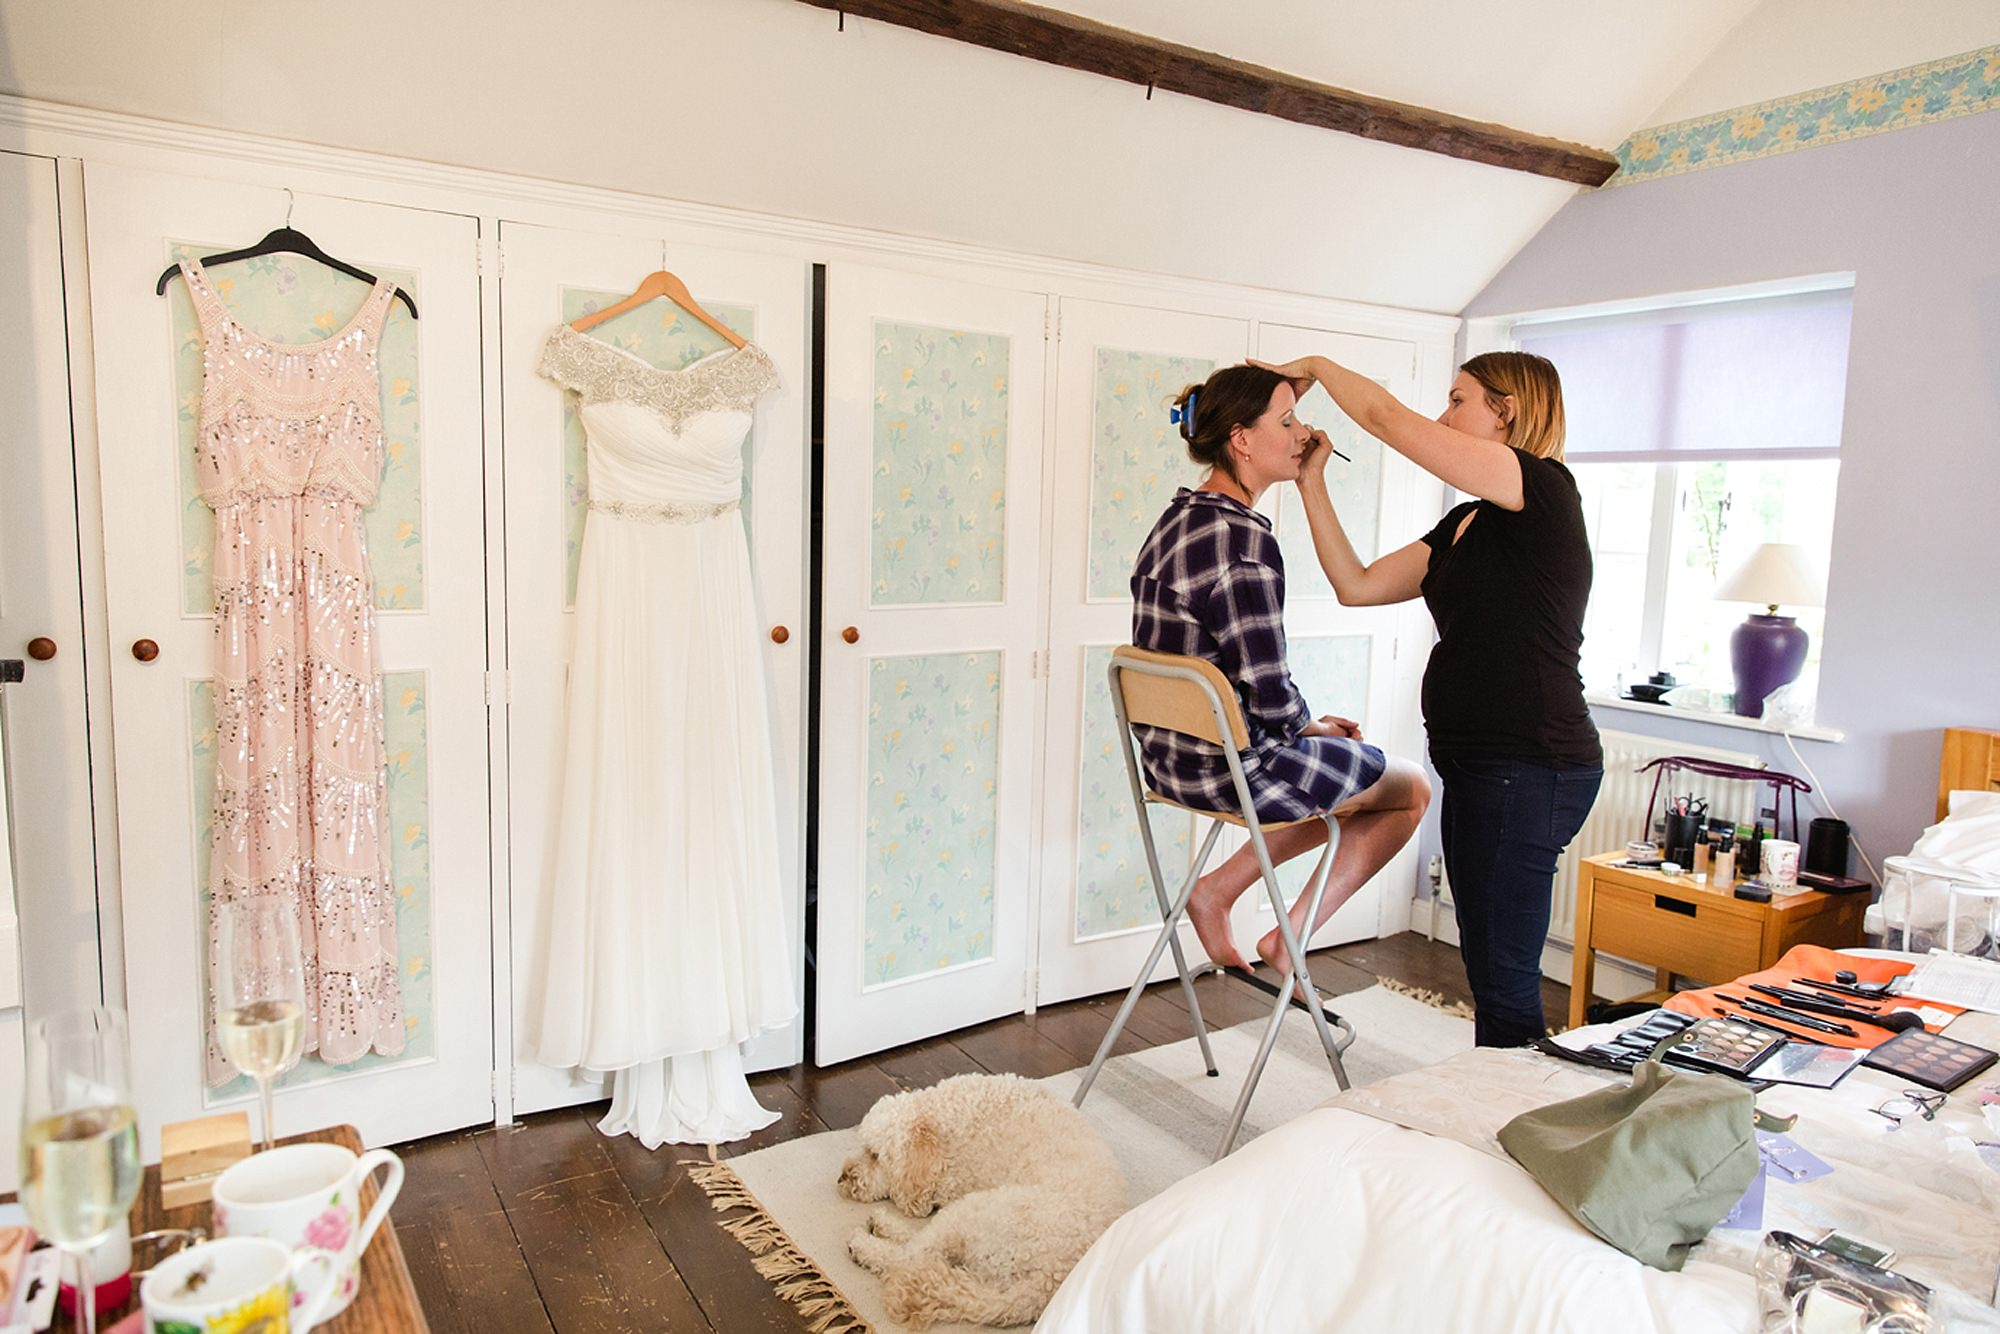 Outdoor humanist wedding photography bride getting ready